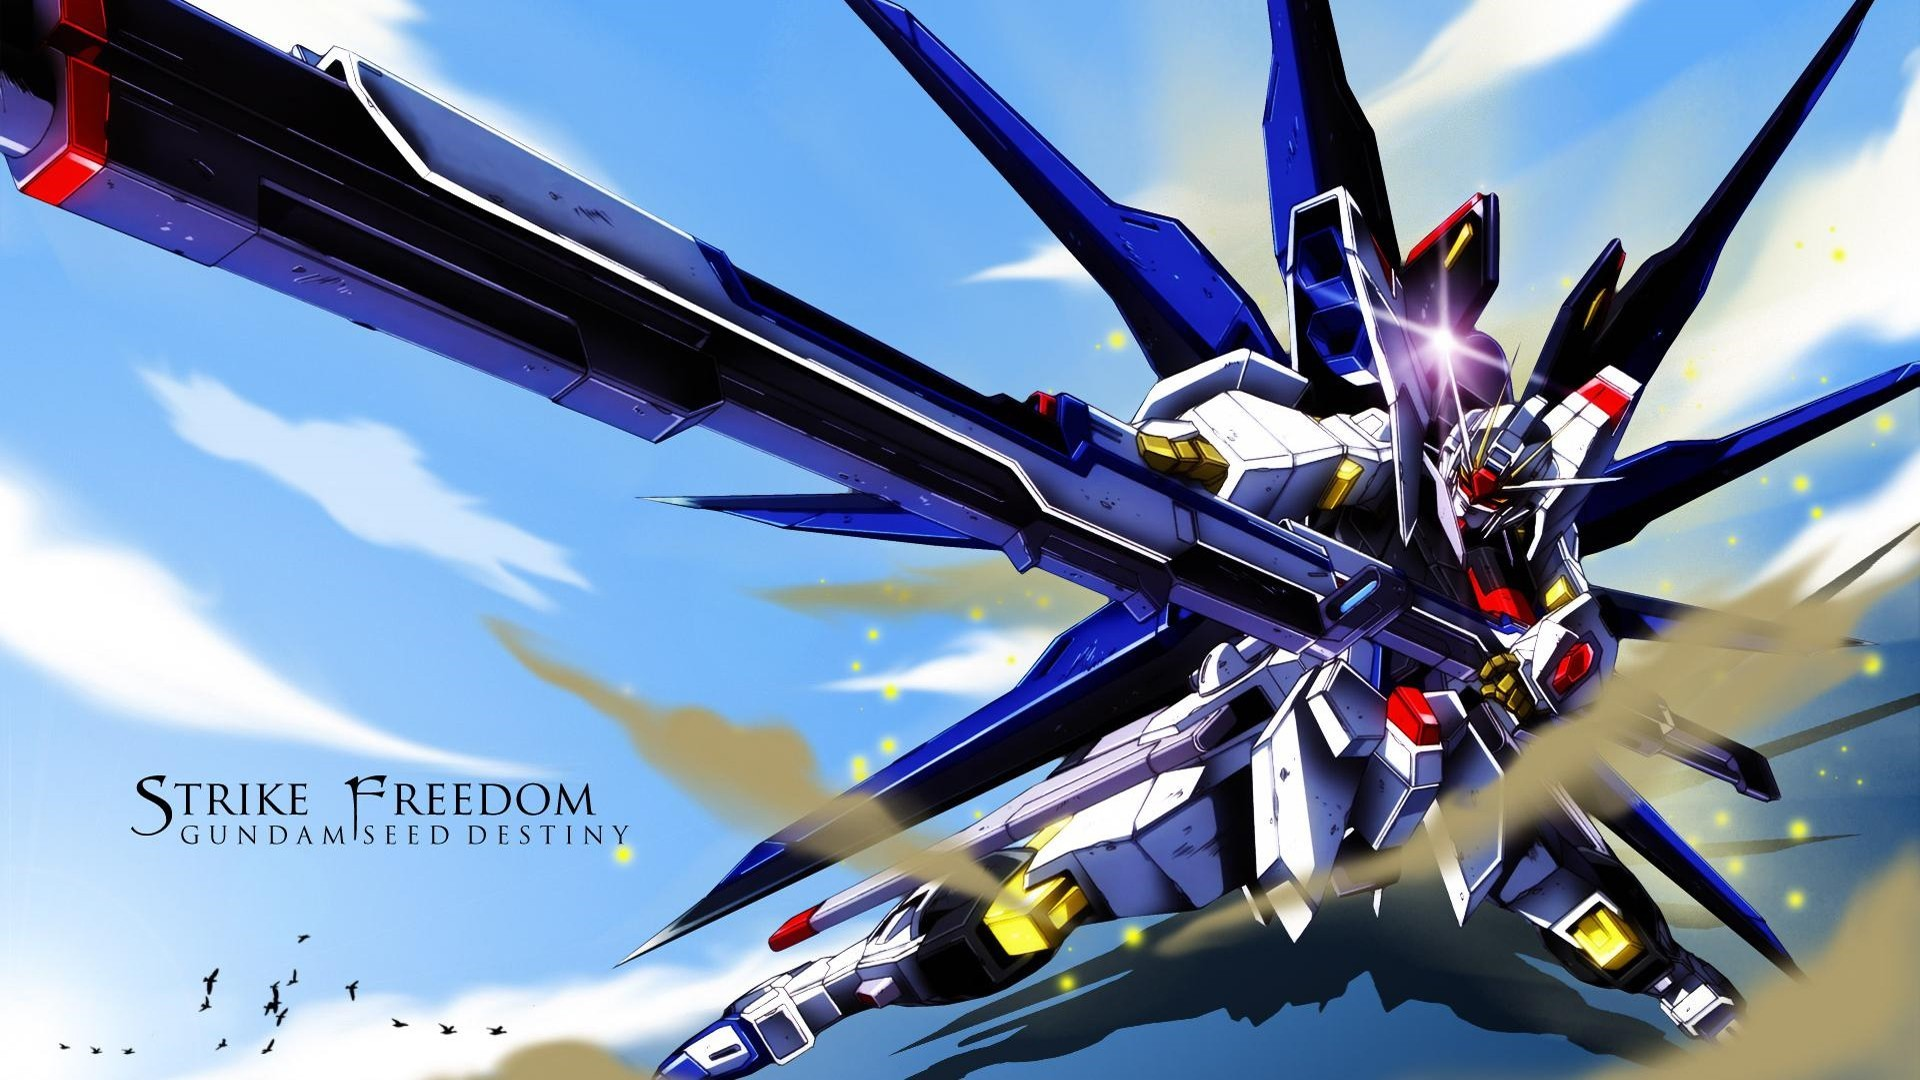 Gundam Wing Wallpaper Background With High Resolution Desktop